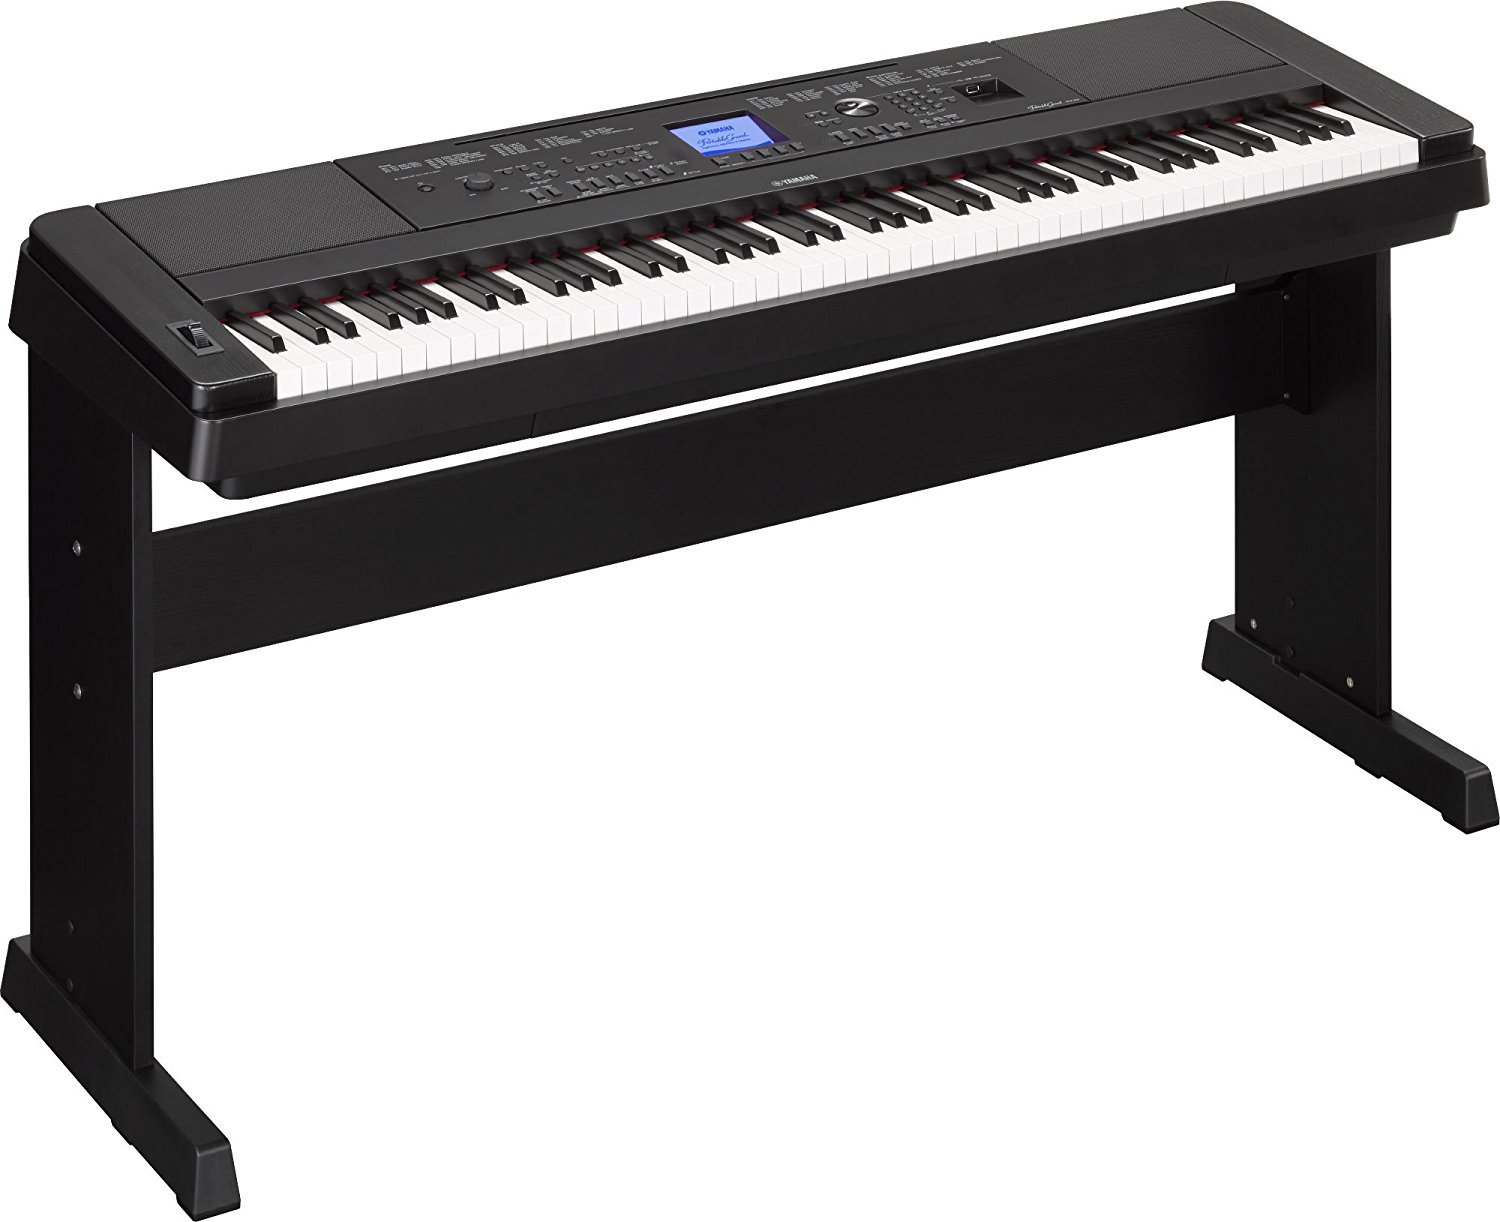 Yamaha DGX 660 Features